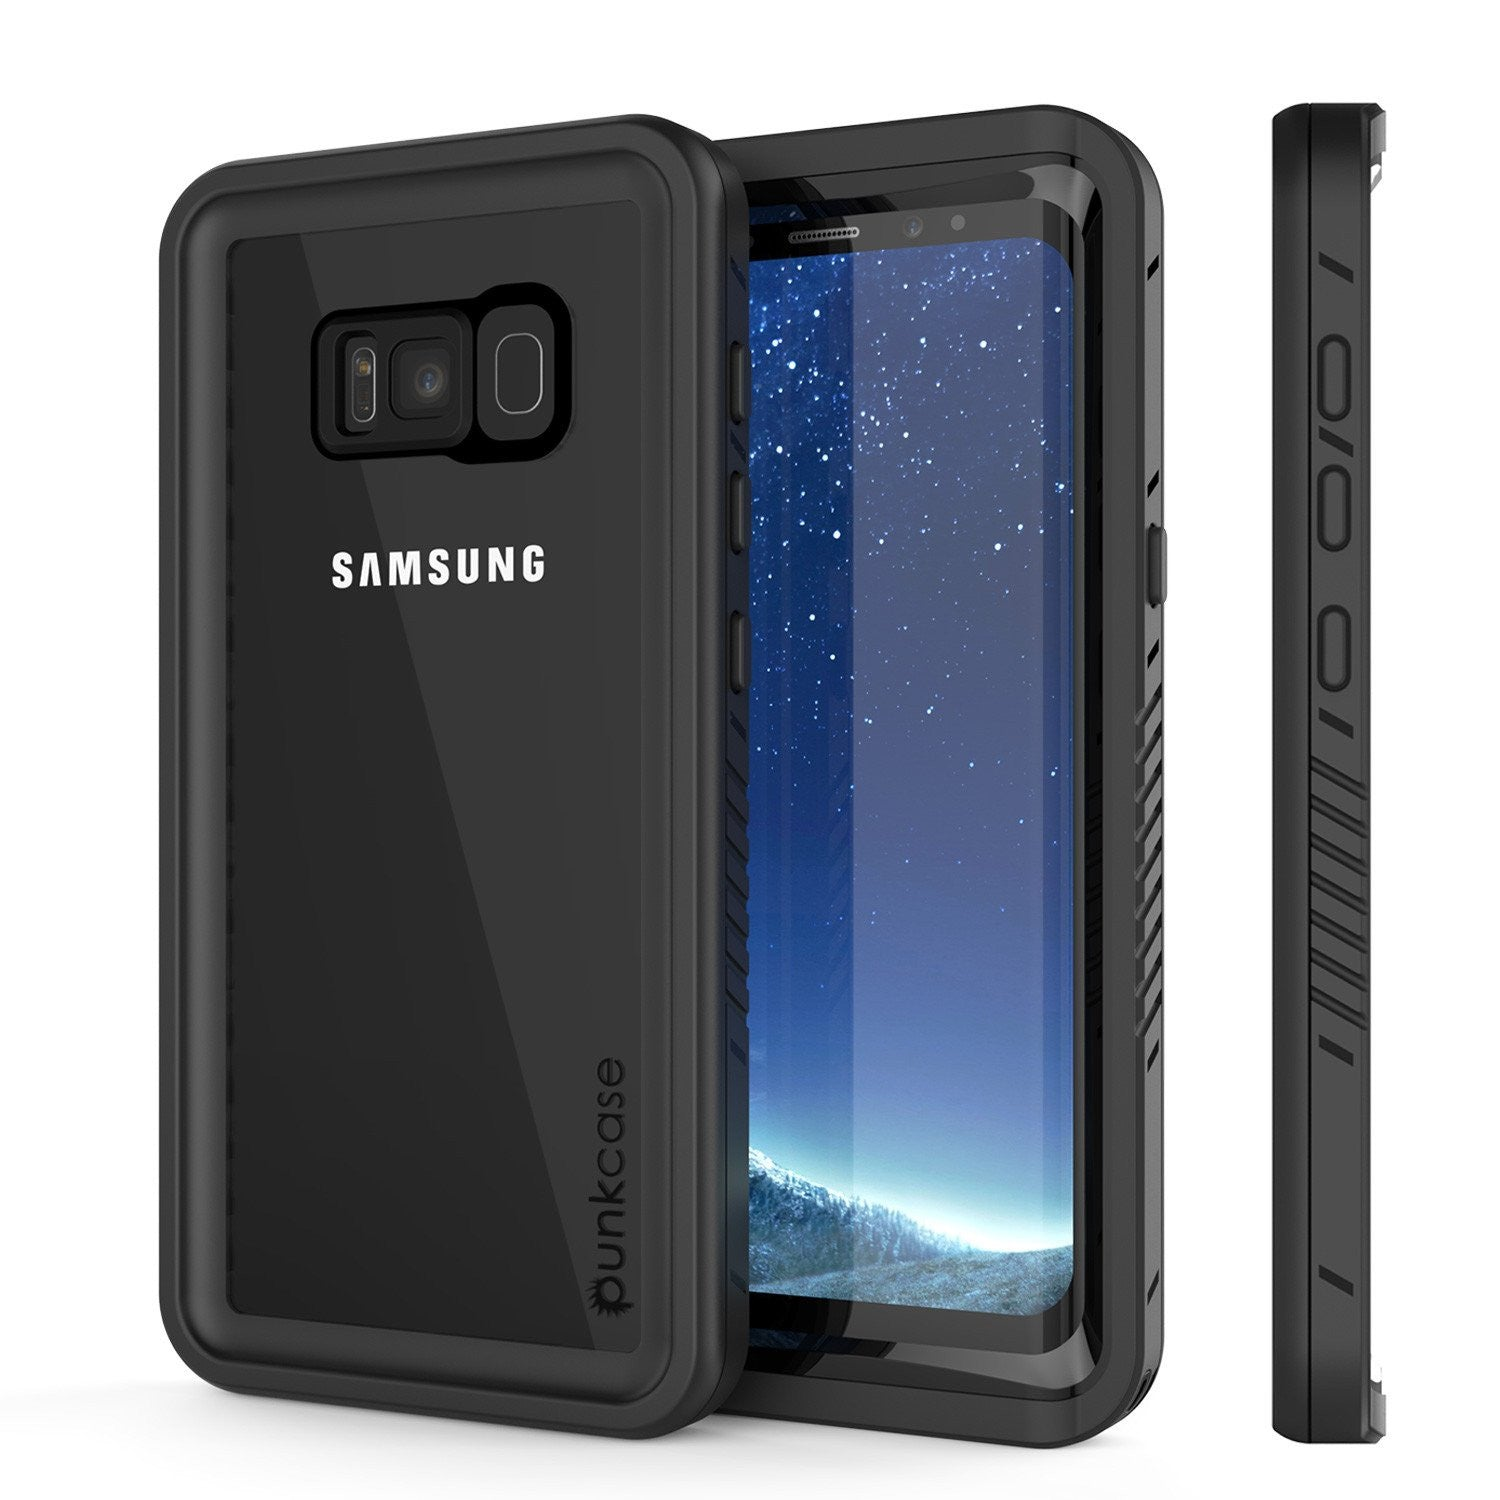 Galaxy S8 Waterproof Case, Punkcase [Extreme Series] [Slim Fit] [IP68 Certified] [Shockproof] [Snowproof] [Dirproof] Armor Cover [Black]